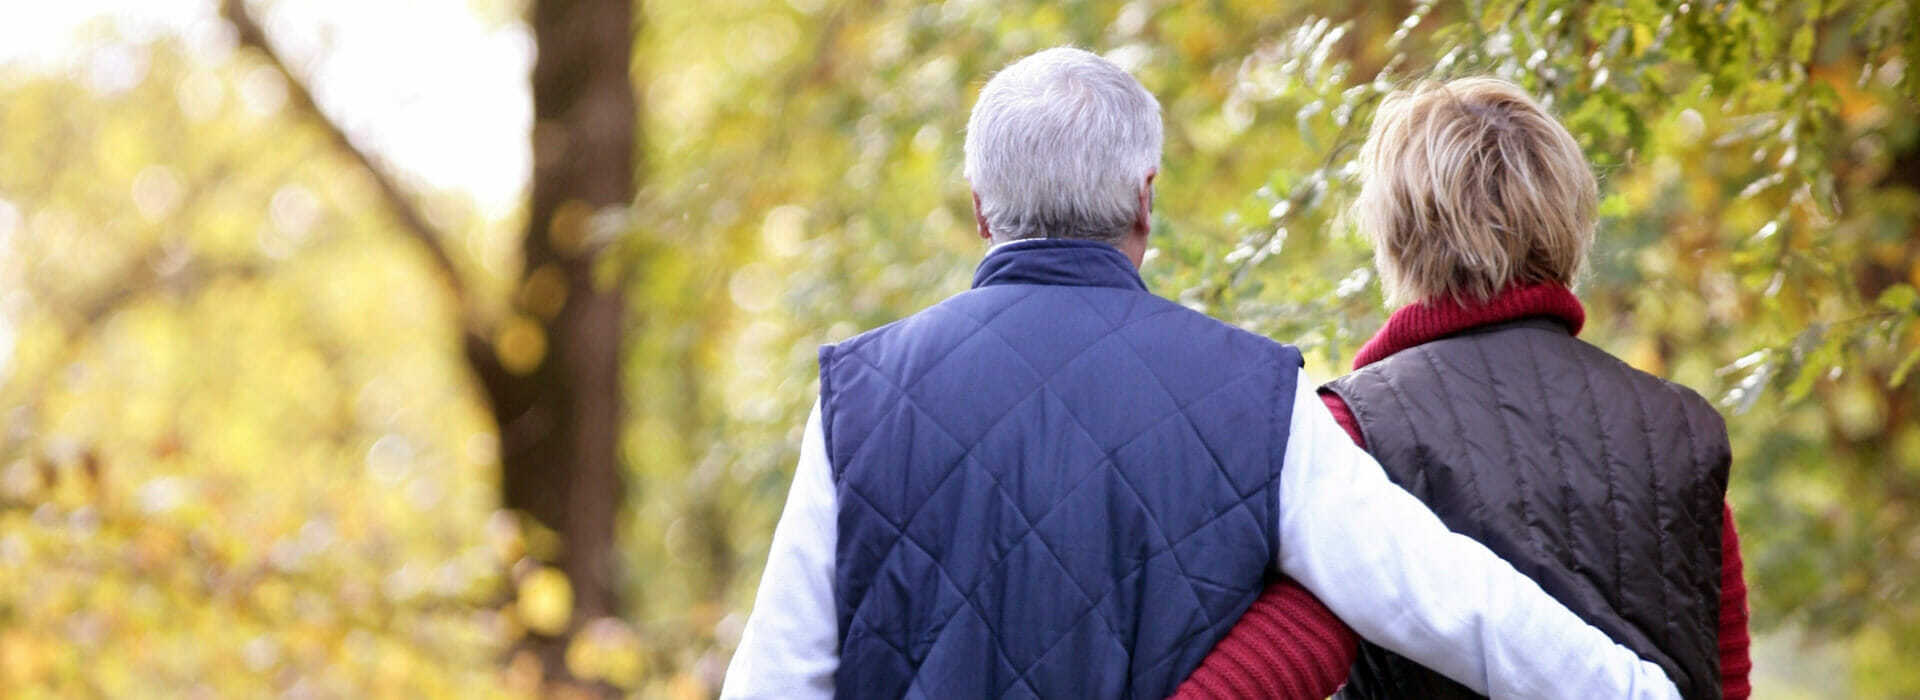 Carotid disease survivor walking down a forest path with their partner.